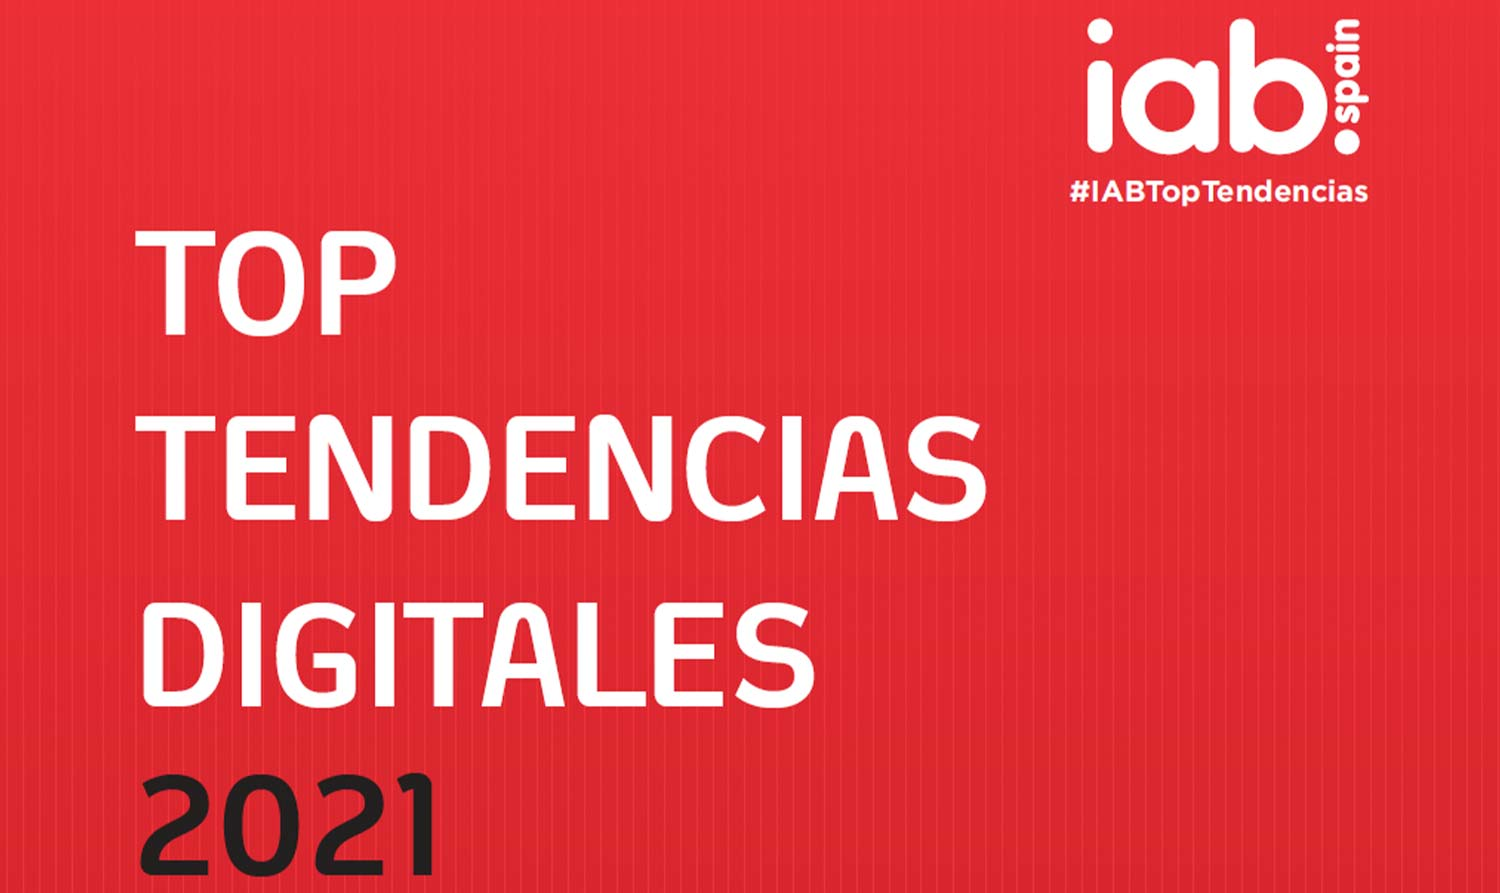 Top Tendencias Digitales 2021 IAB Spain #IABTopTendencias